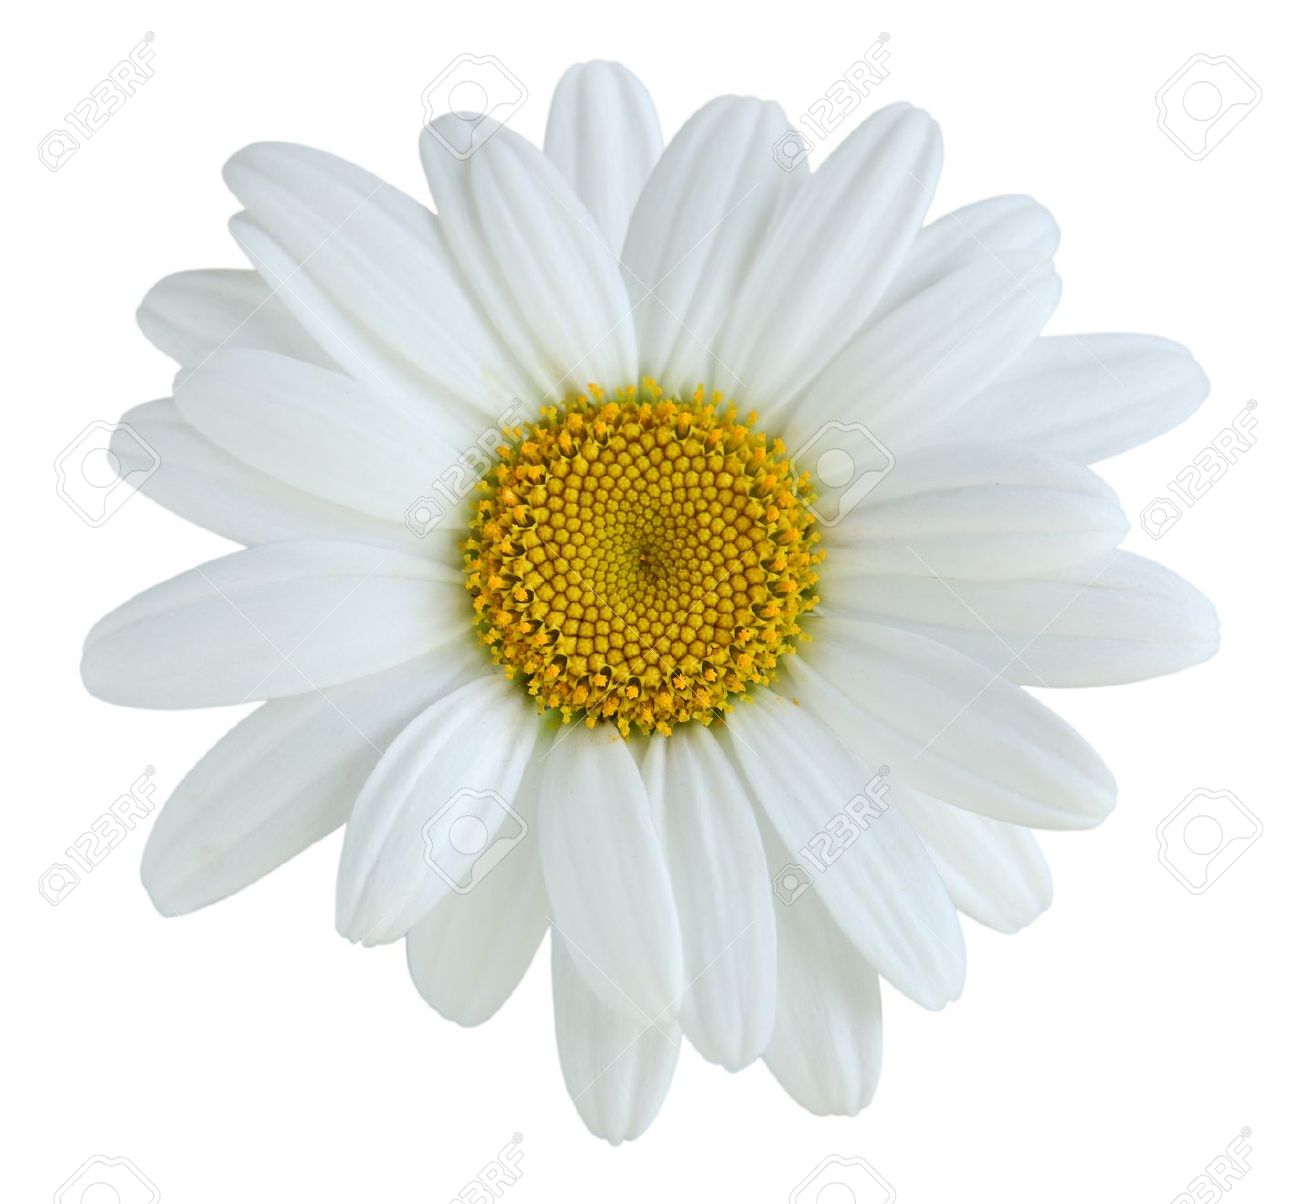 daisy flower stock photos  pictures. royalty free daisy flower, Natural flower